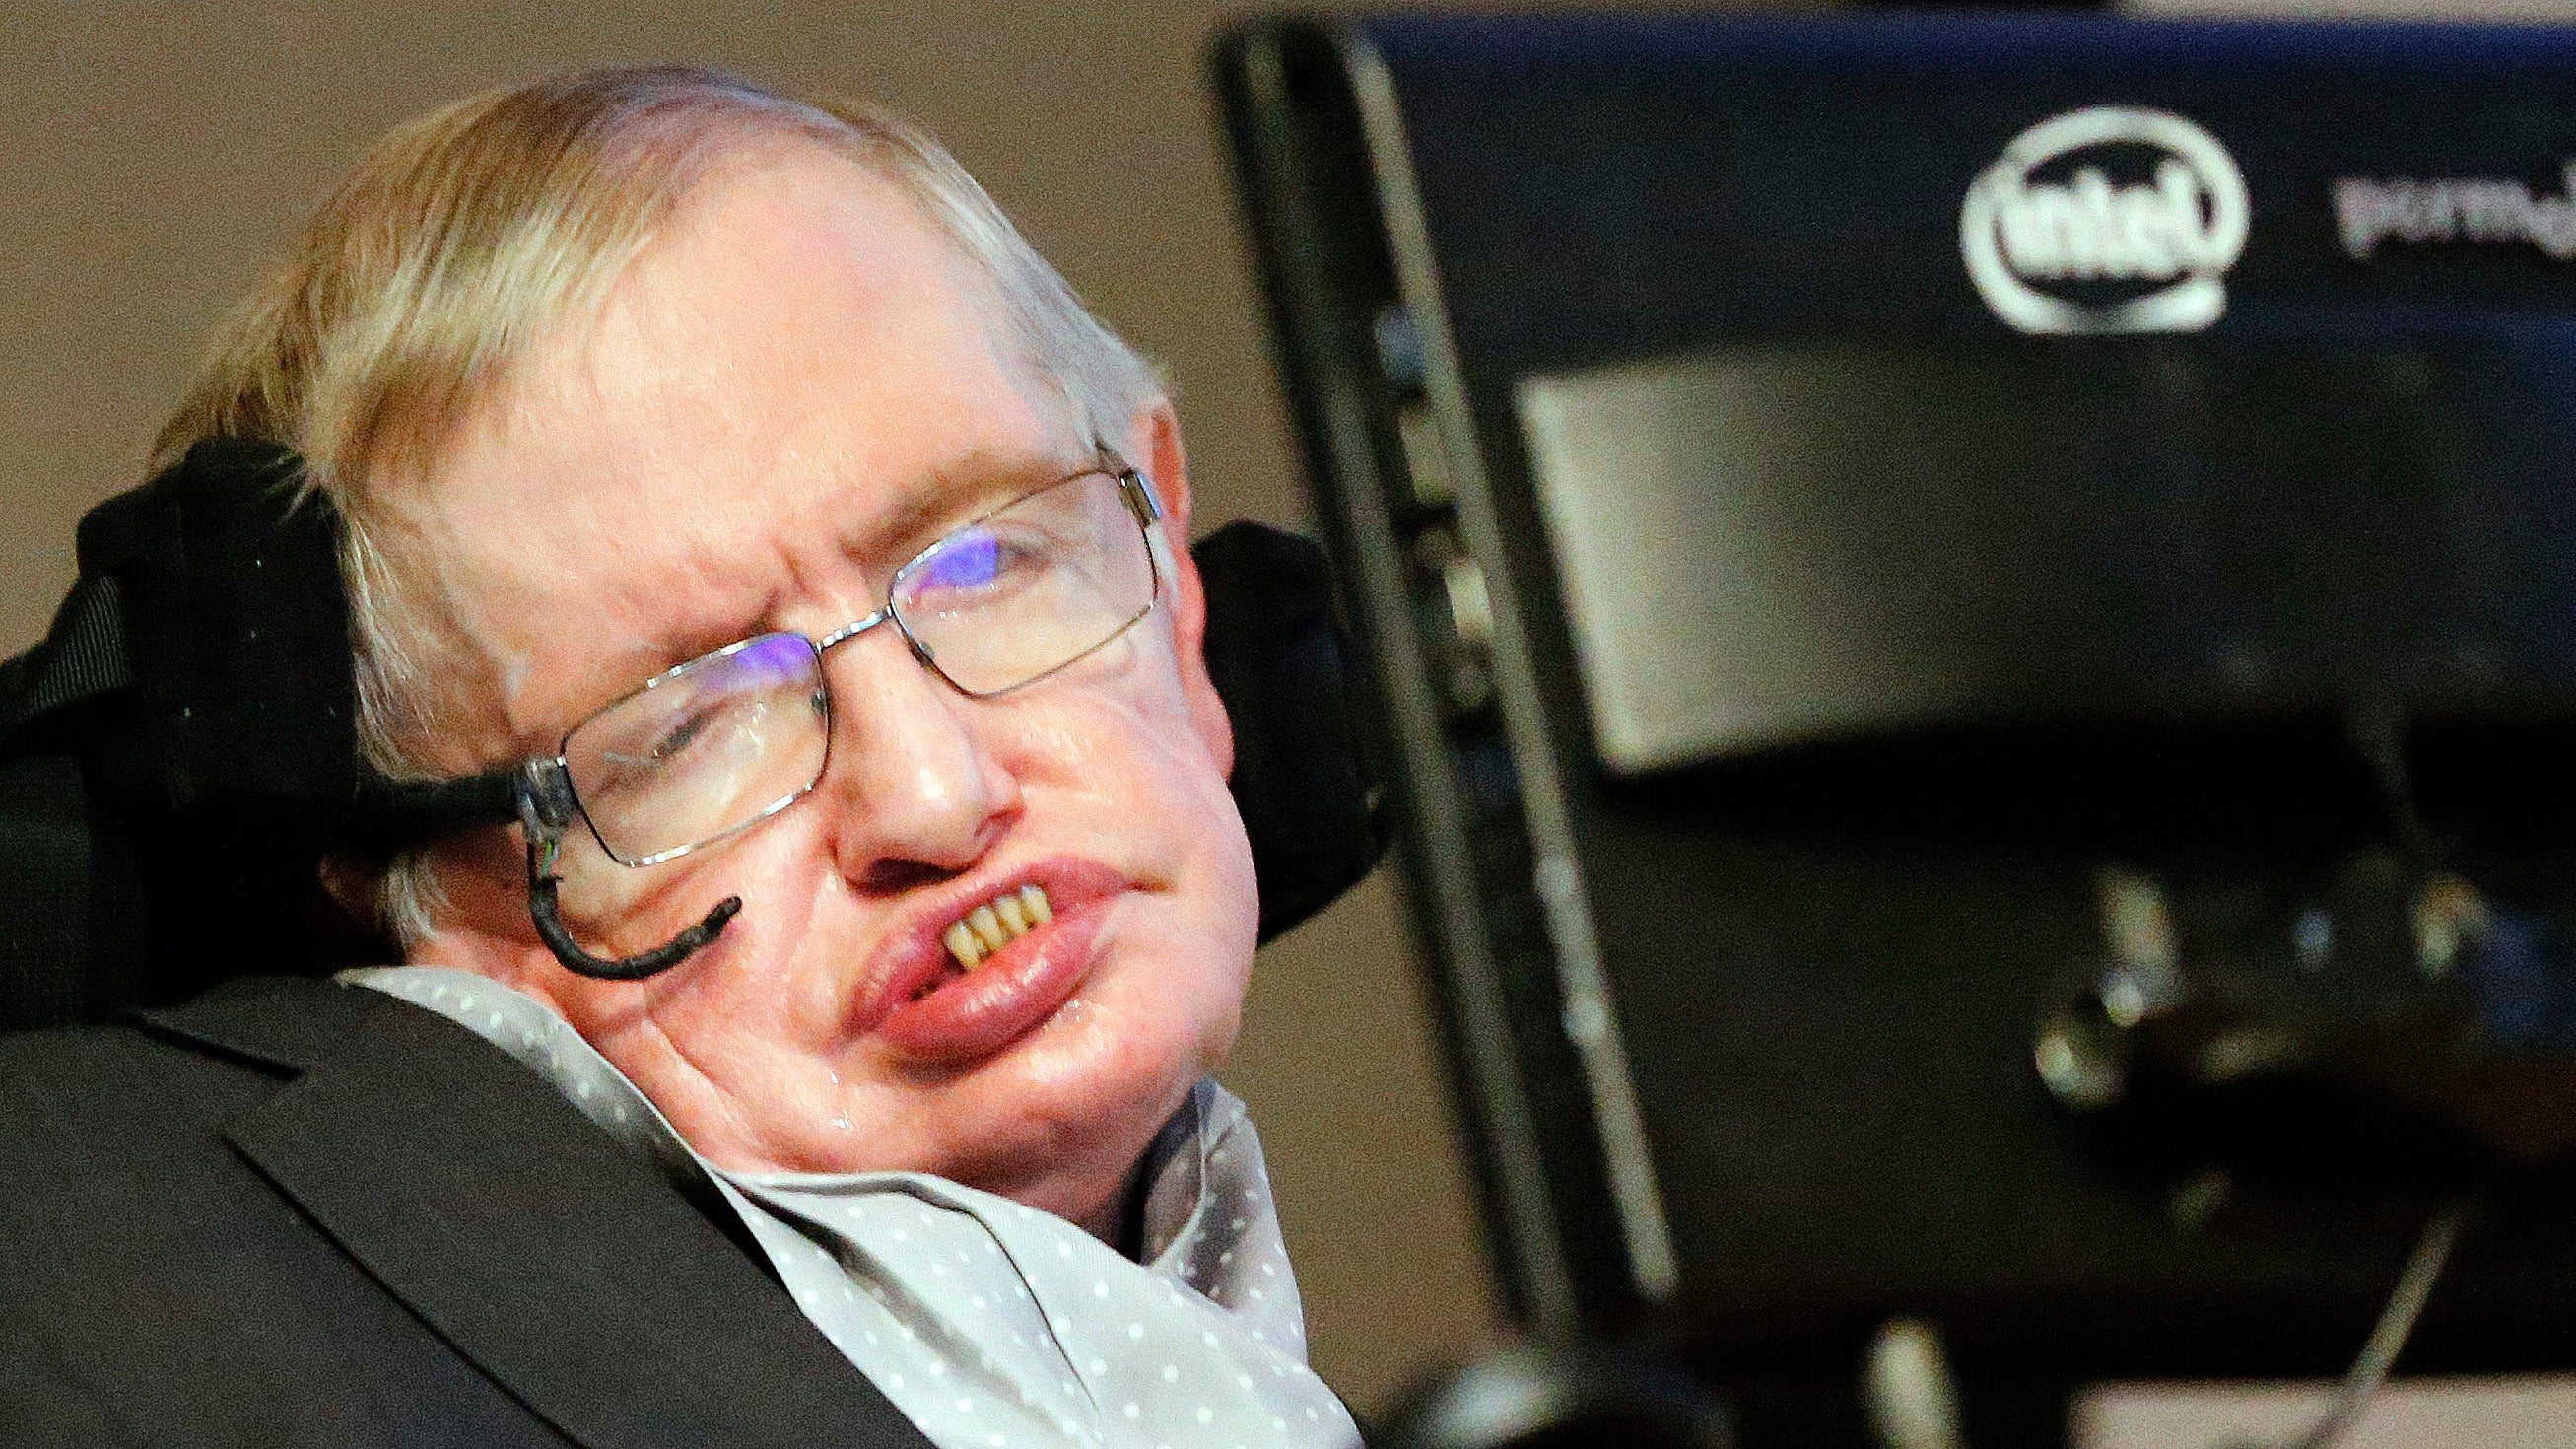 Stephen Hawking's Final Paper Published